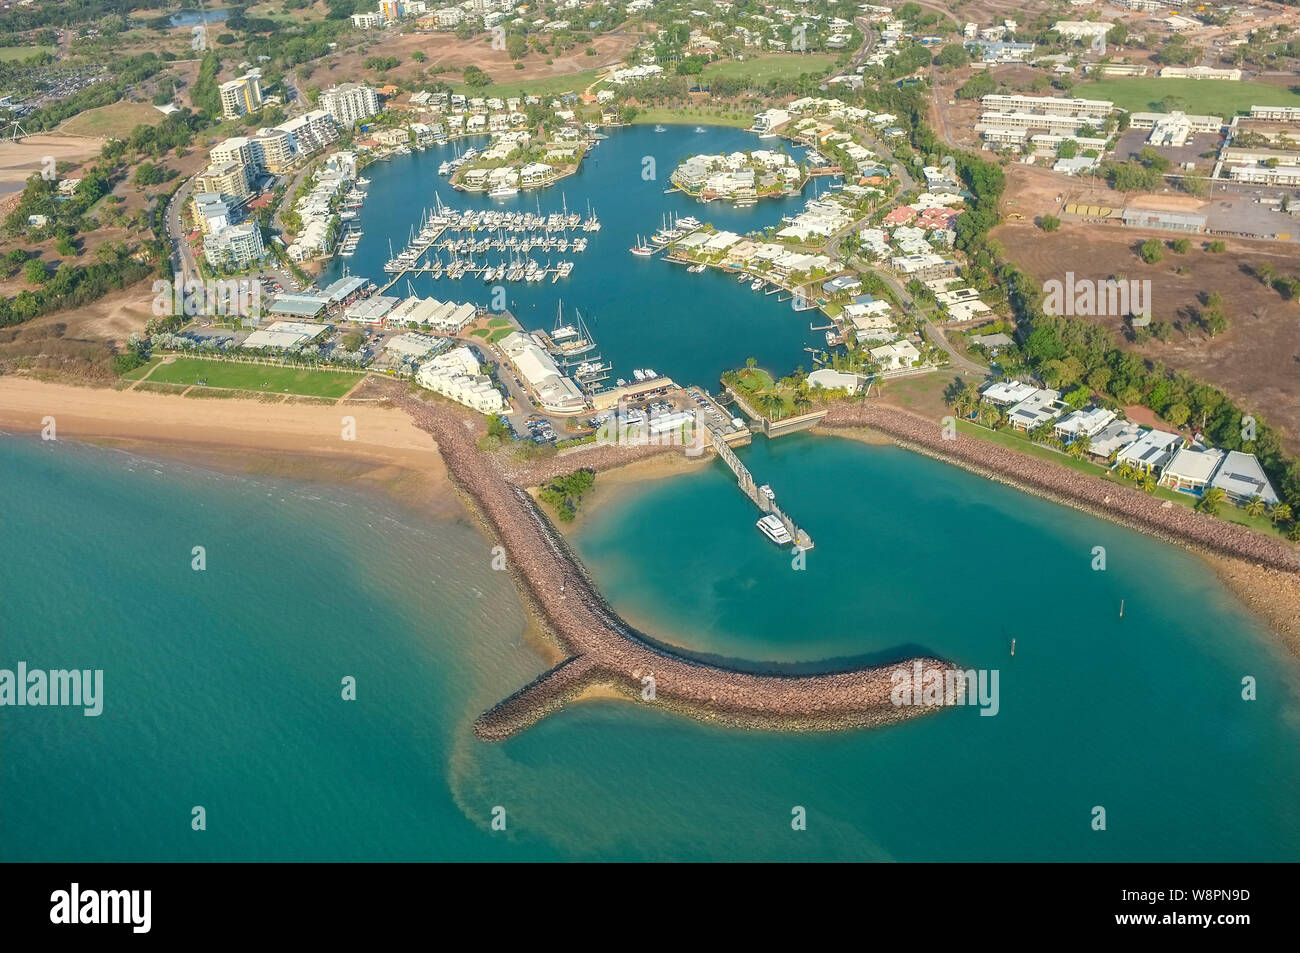 aerial-view-of-the-cullen-bay-marina-in-